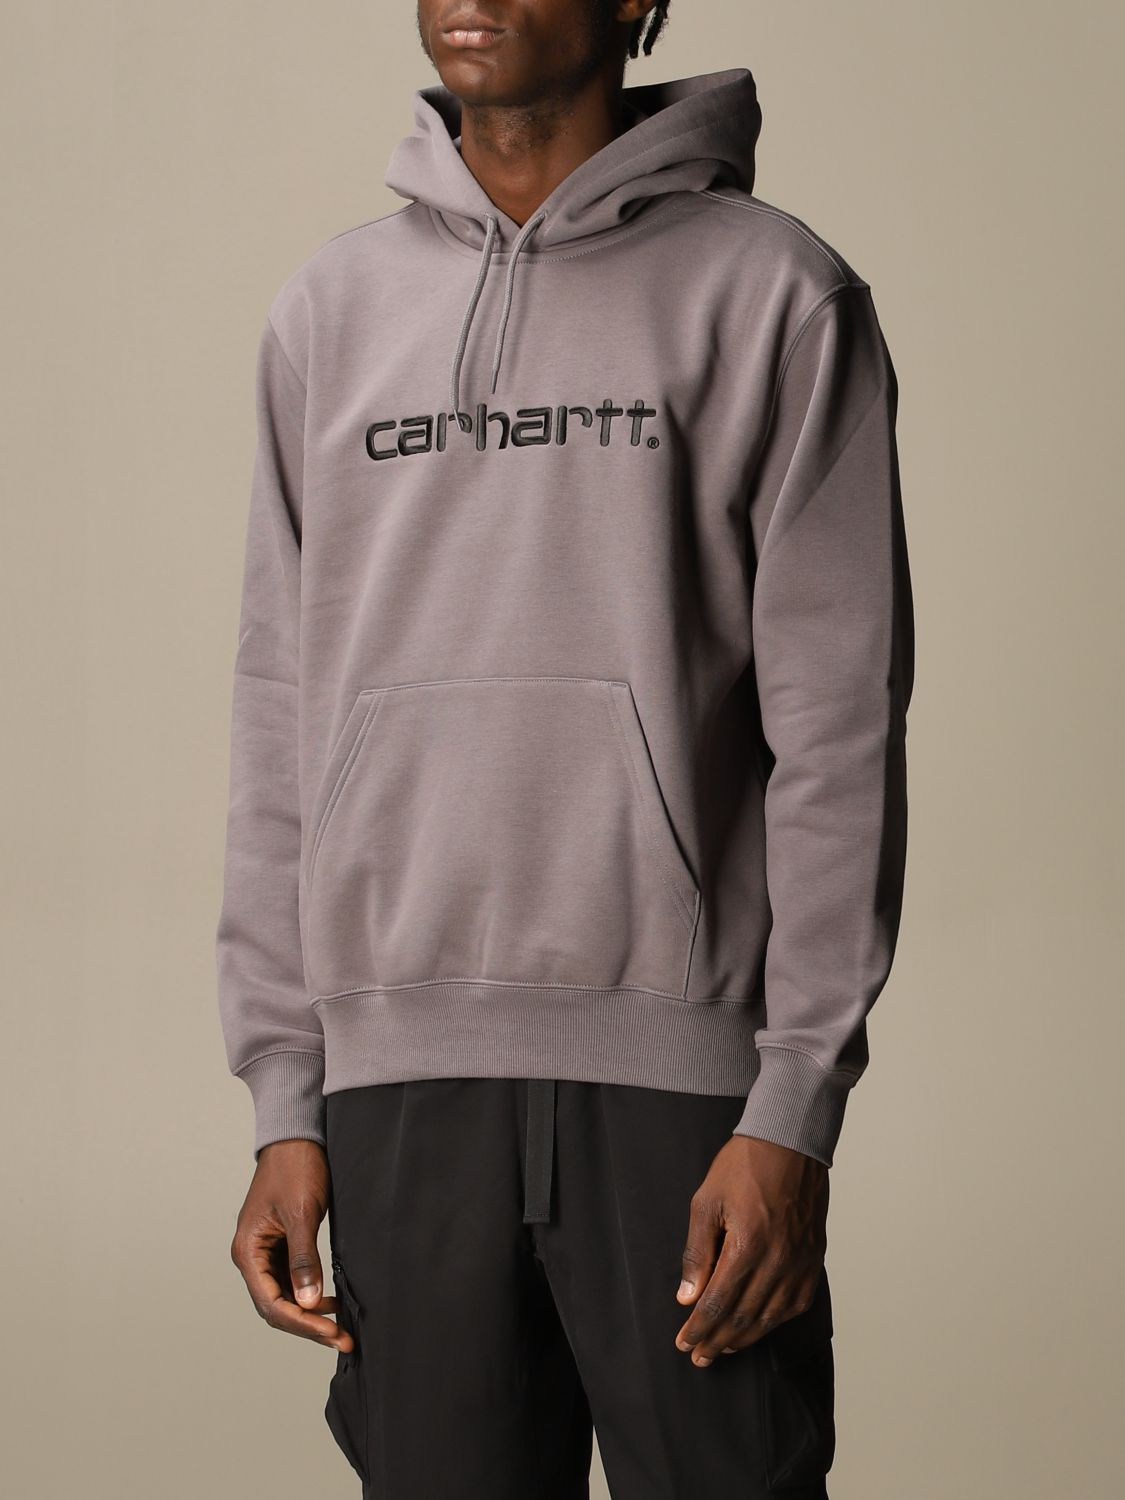 Sweatshirt Carhartt: Sweatshirt men Carhartt black 1 4